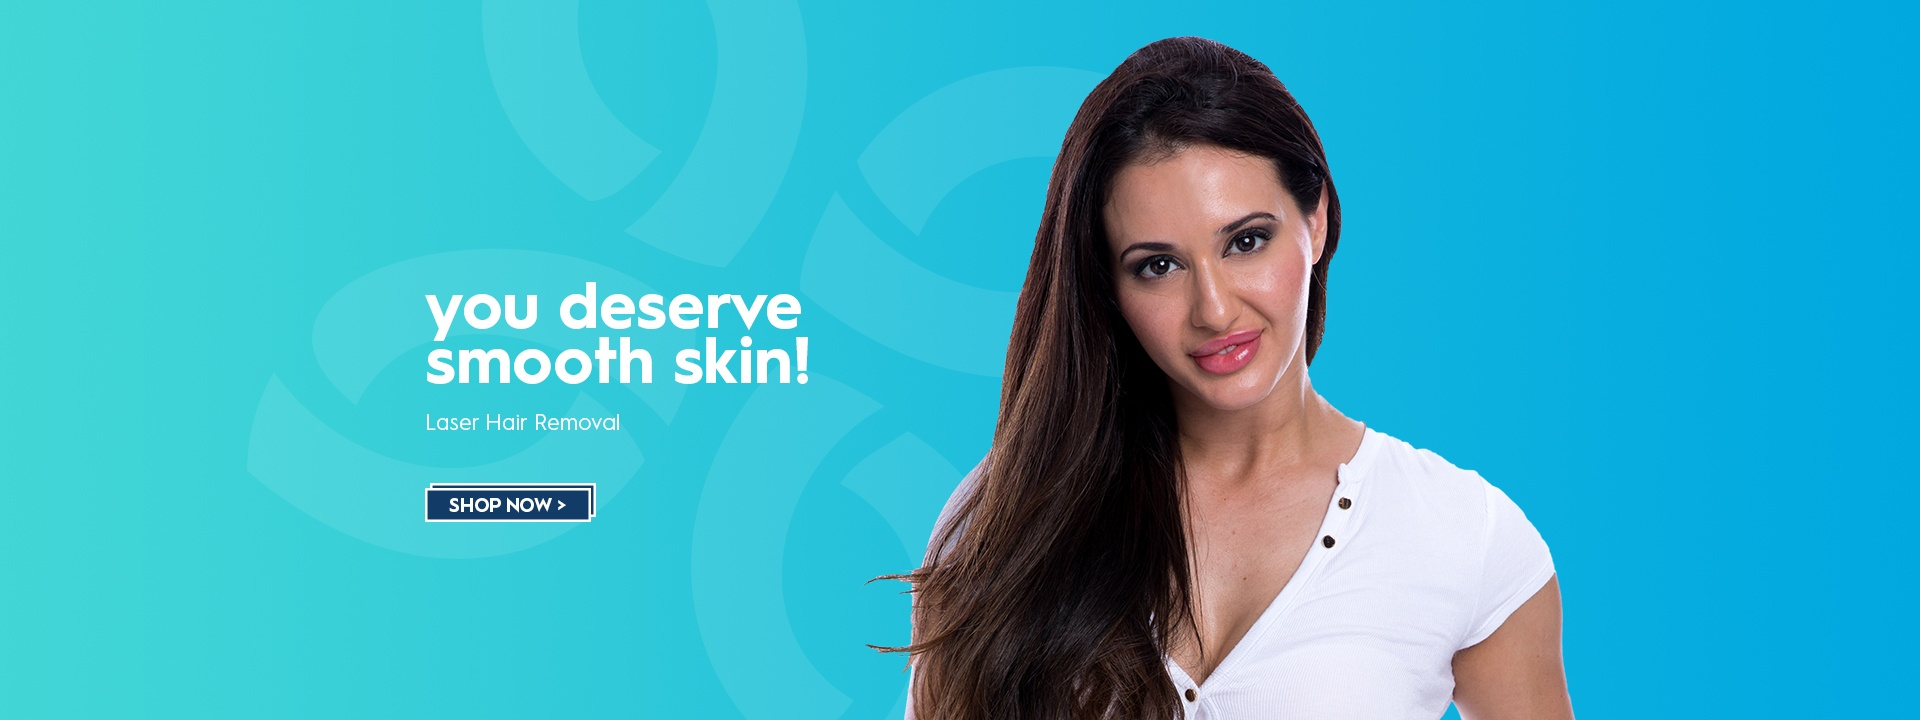 Laser hair removal by the experts at Australian Skin Clinics